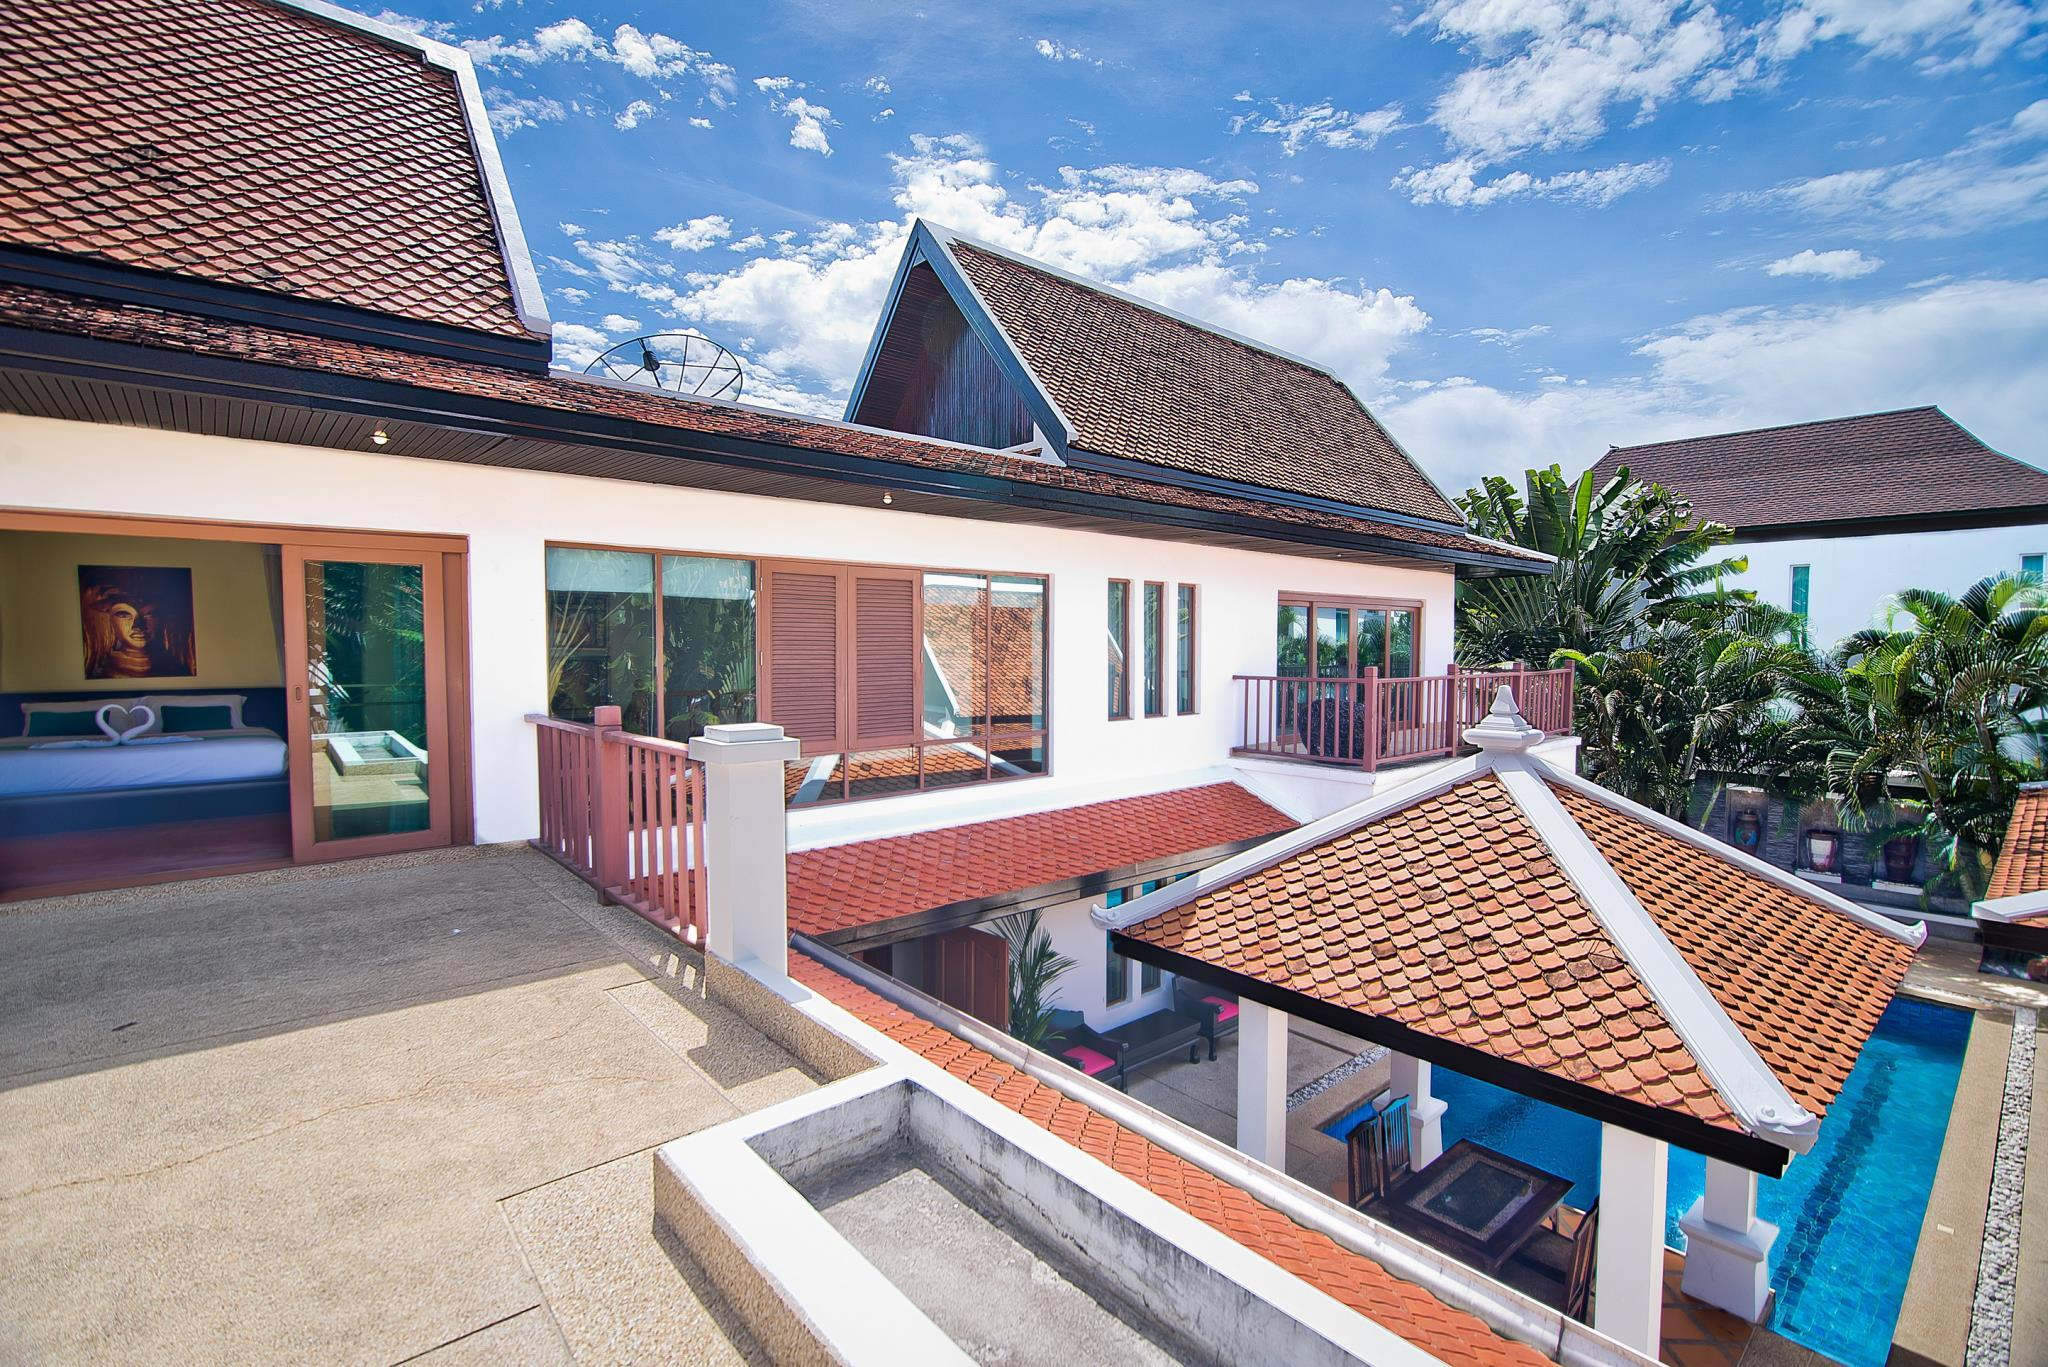 Villa 5 Chambres avec Piscine privée ‒ Na Jomtien 3 (5-Bedroom Villa Na Jomtien 3 with Private Pool)